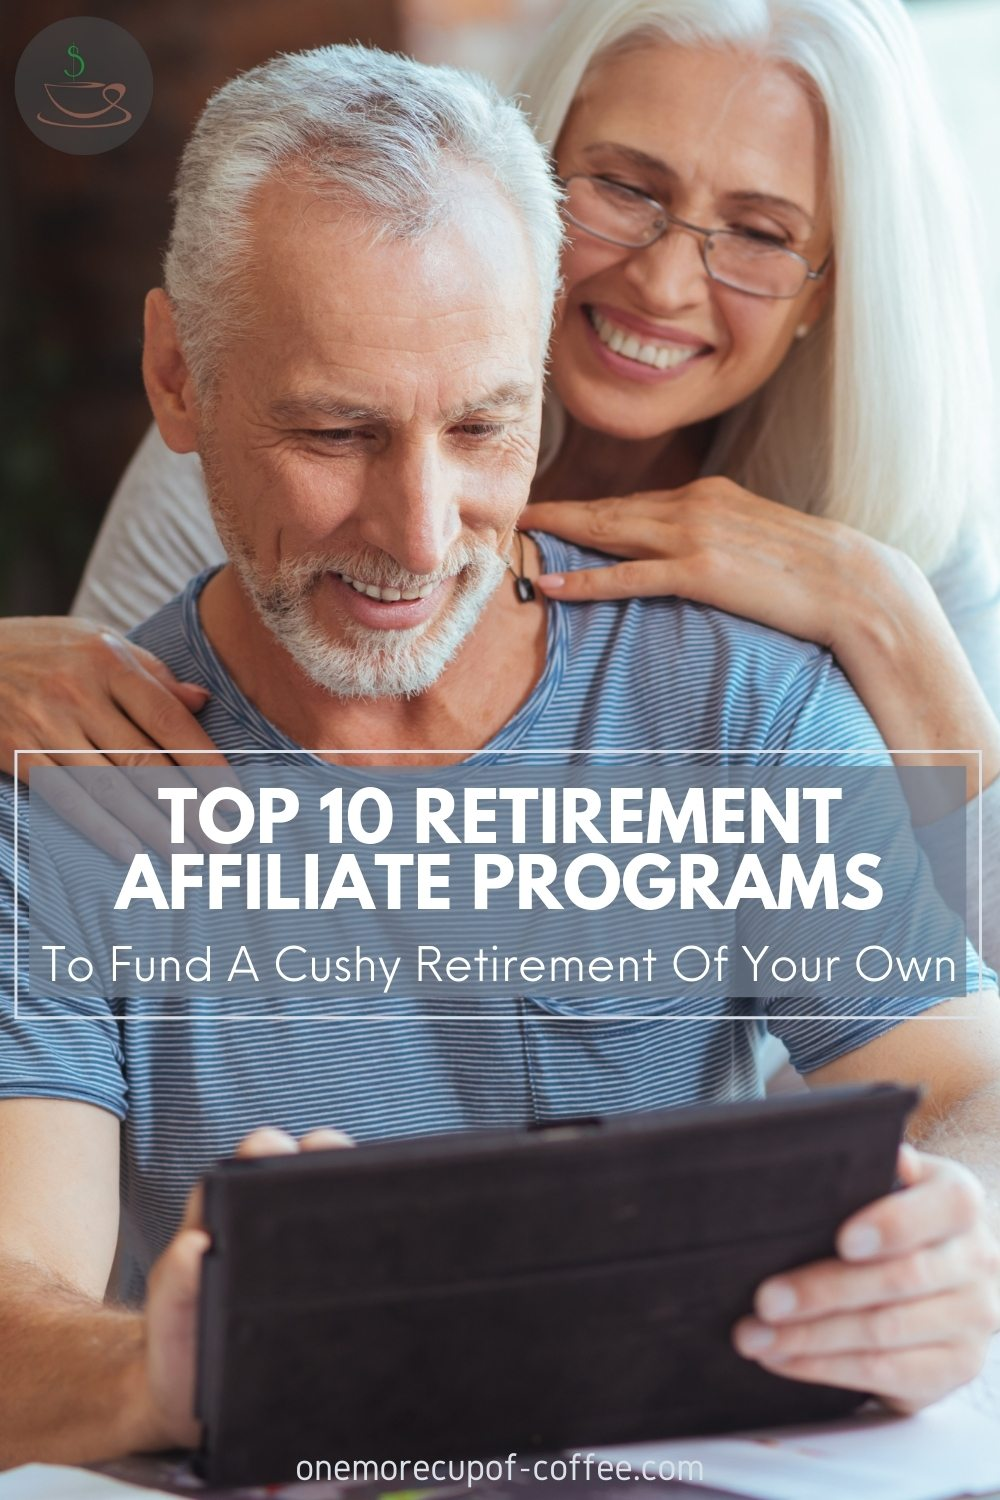 """a smiling elderly couple looking at a tablet; with text overlay """"Top 10 Retirement Affiliate Programs To Fund A Cushy Retirement Of Your Own"""""""